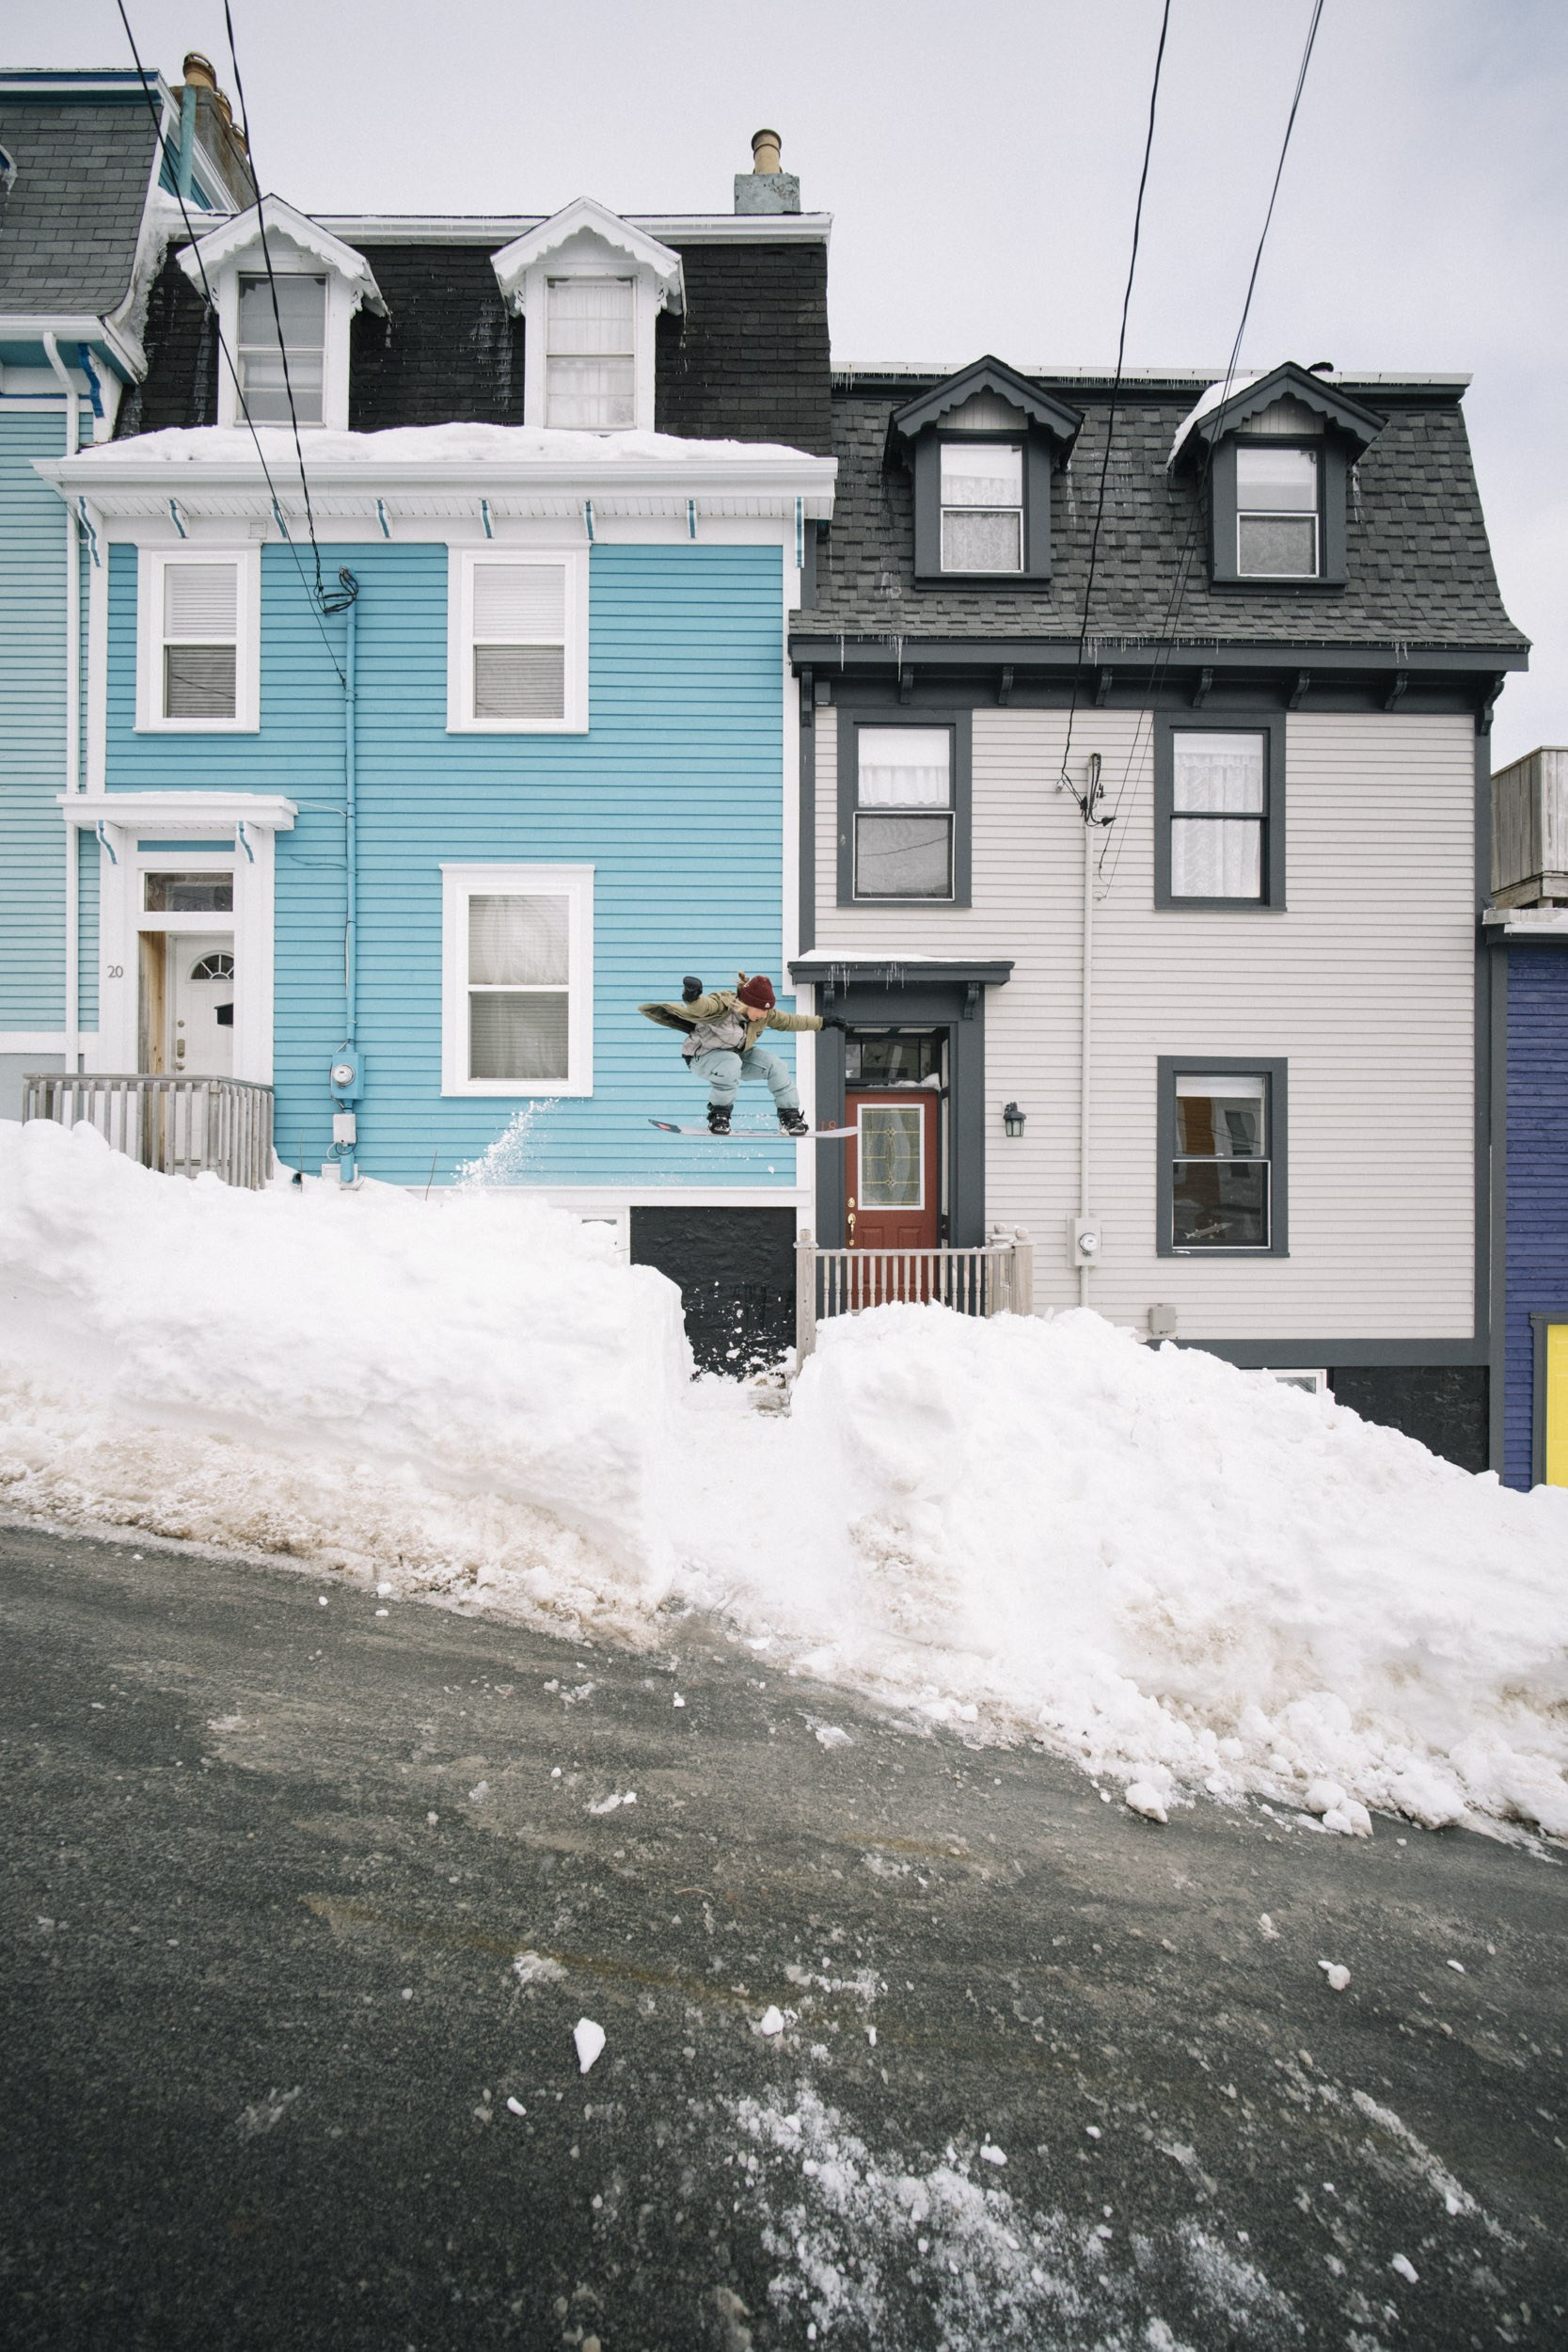 Patience of a Saint, Stranded in St. John's Newfoundland